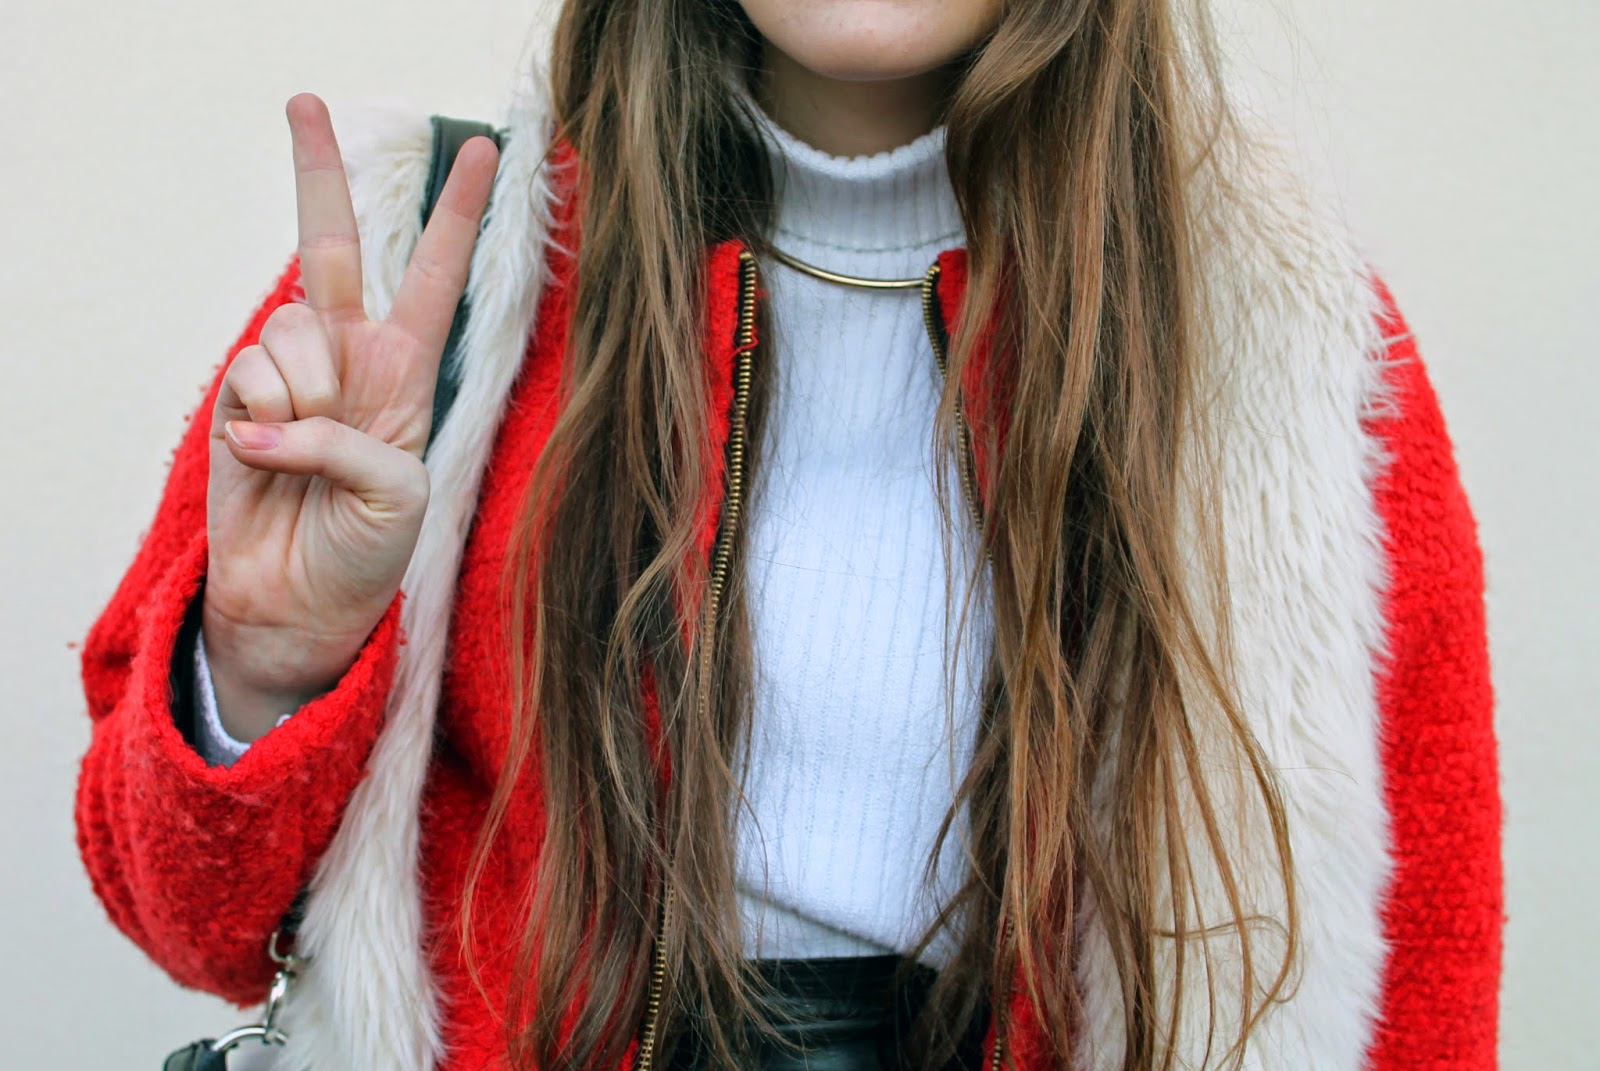 river island gold choker necklace, primark orange coat, faux fur gilet, asos white rib knit poloneck jumper, long wavy hair, beach waves, fashion blogger